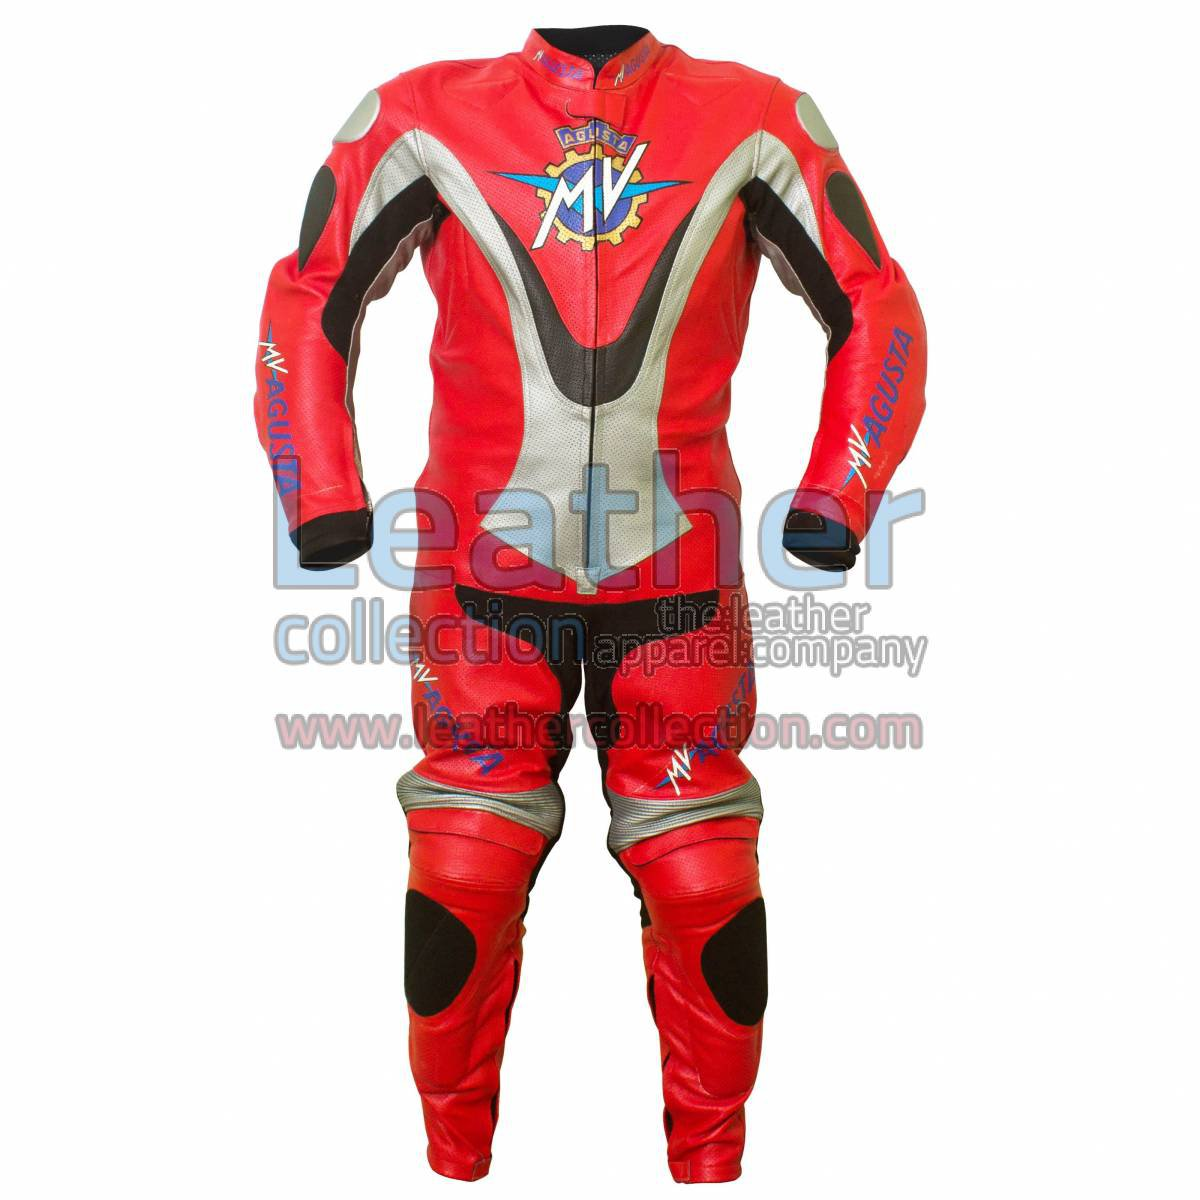 MV Agusta Racing Leather Suit